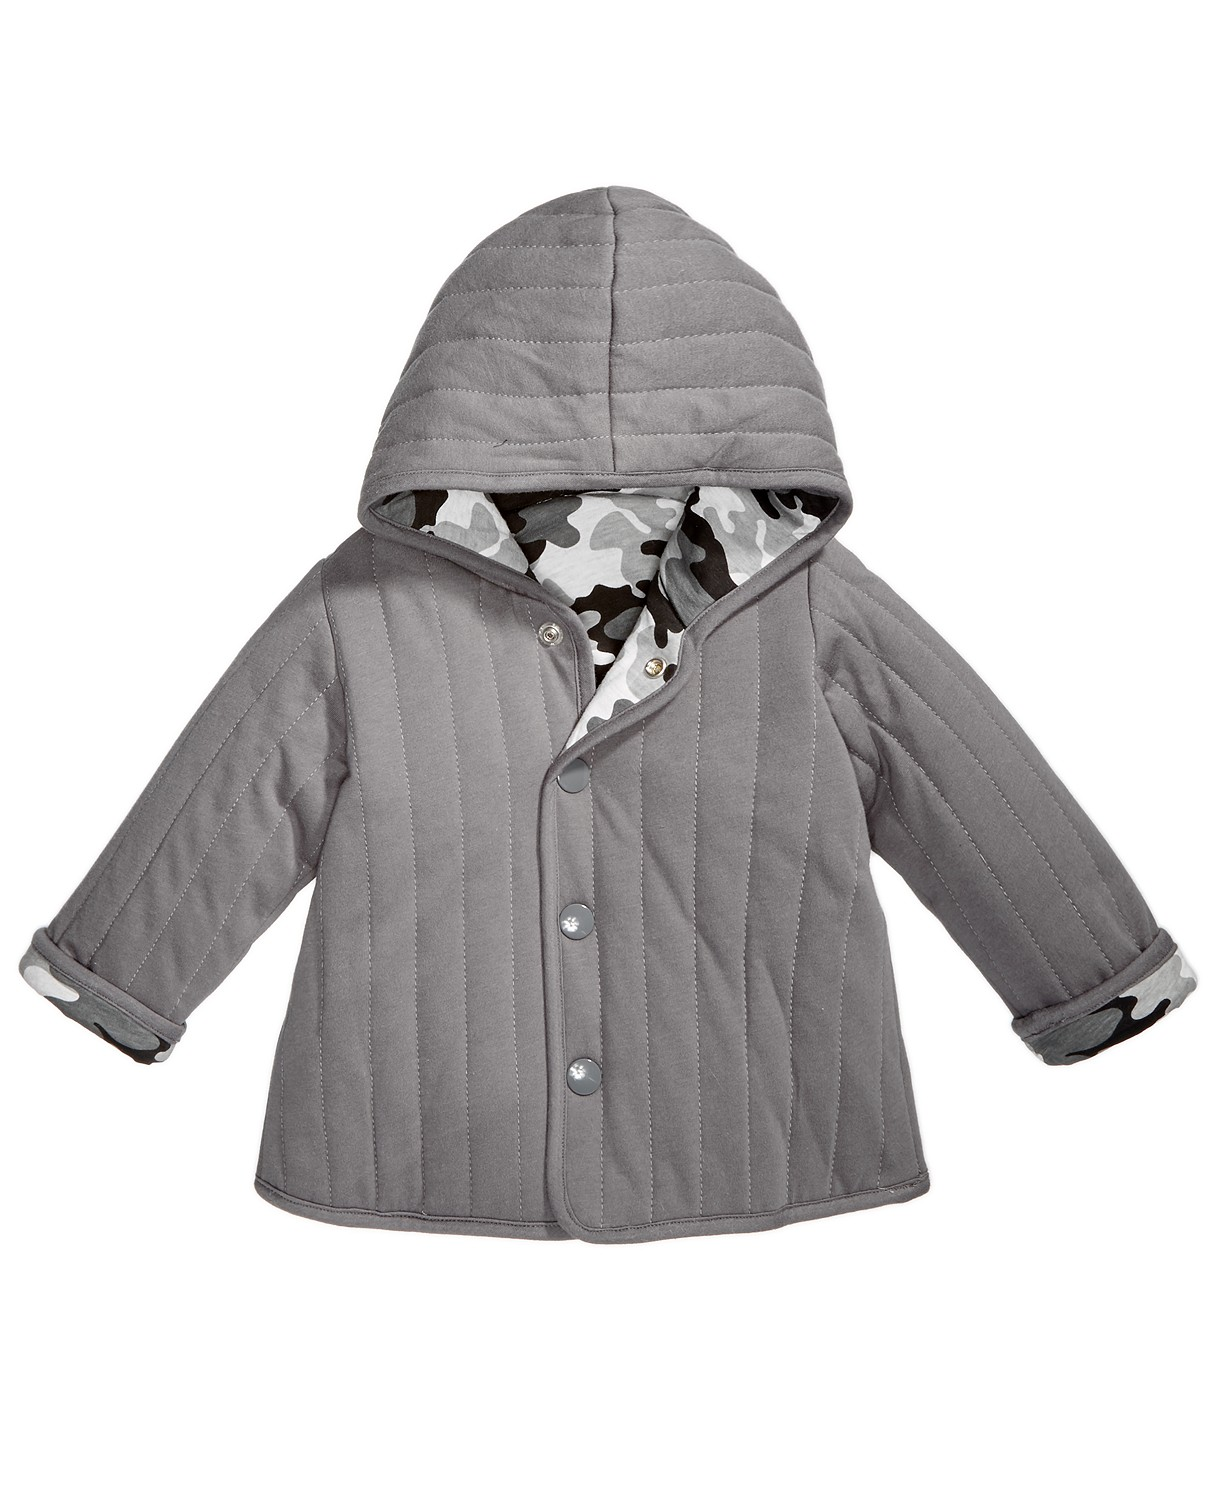 148df2b8c07d3 First Impressions Baby Boys Reversible Camo-Print Jacket $10.73 (Reg.  $36.00)